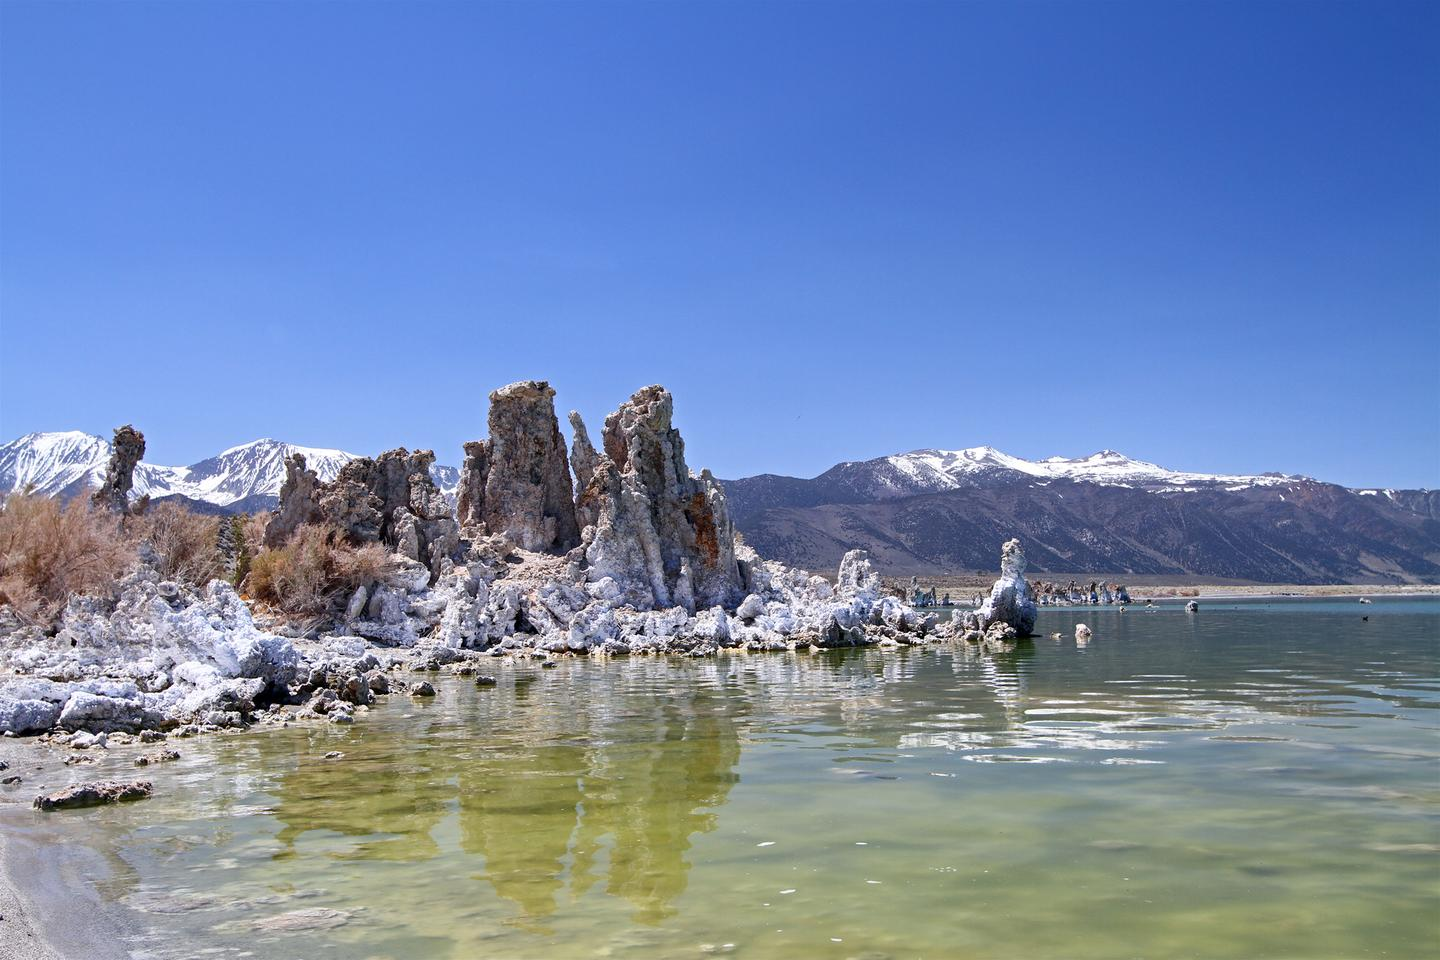 Carbonate-rich Mono Lake in California was one of the lakes researchers took phosphorous measurements